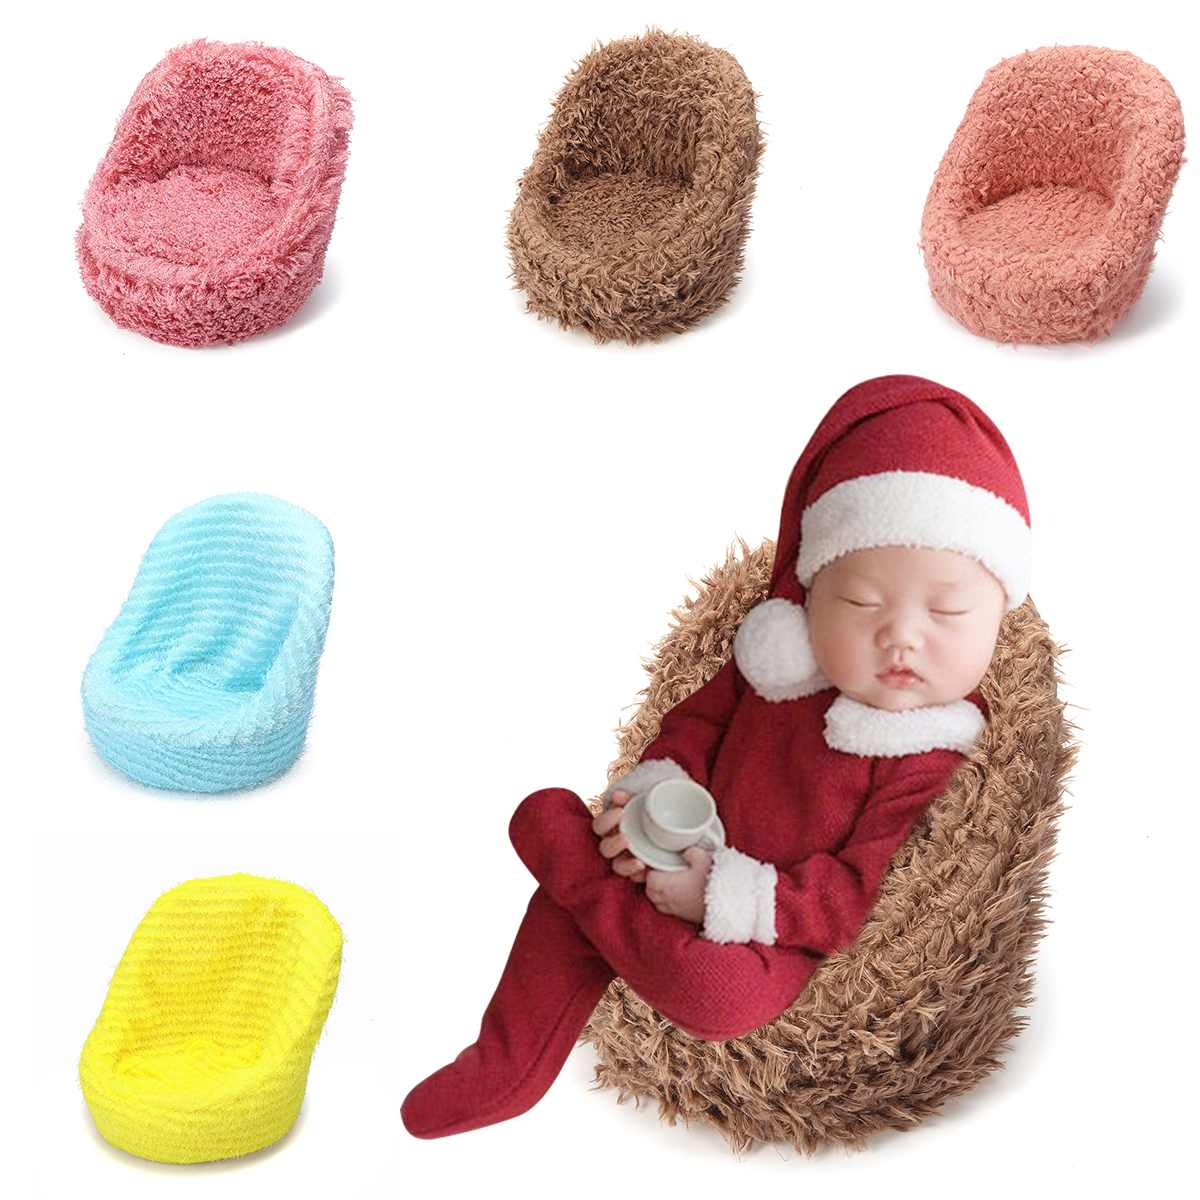 32x28x32cm Mini Newborn Photography Props Baby Posing Sofa Soft Chair Basket Infant Posing Photographing Studio Shooting Tool